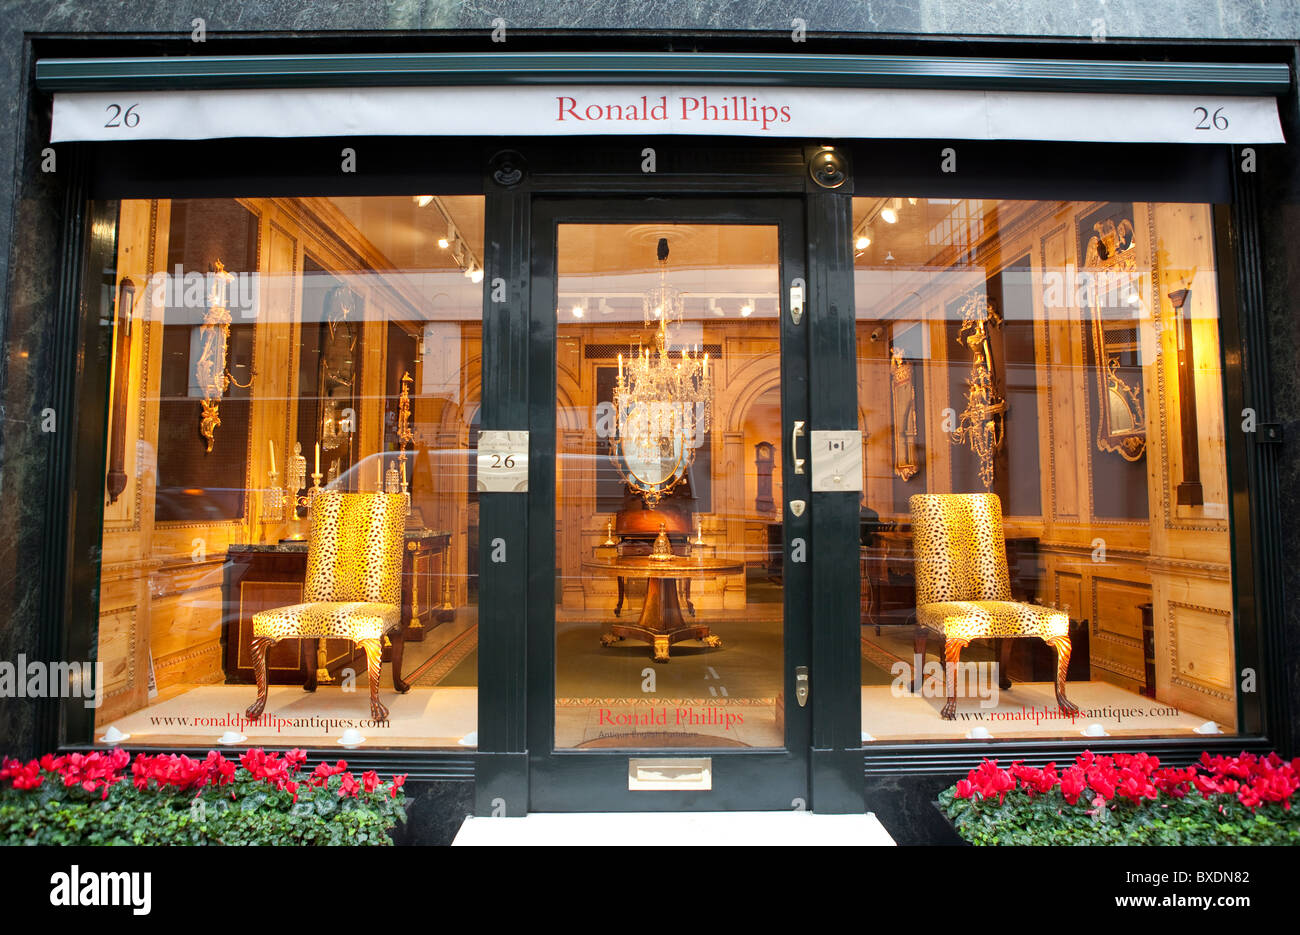 Ronald Phillips antique furniture store in Mayfair, London. - Stock Image